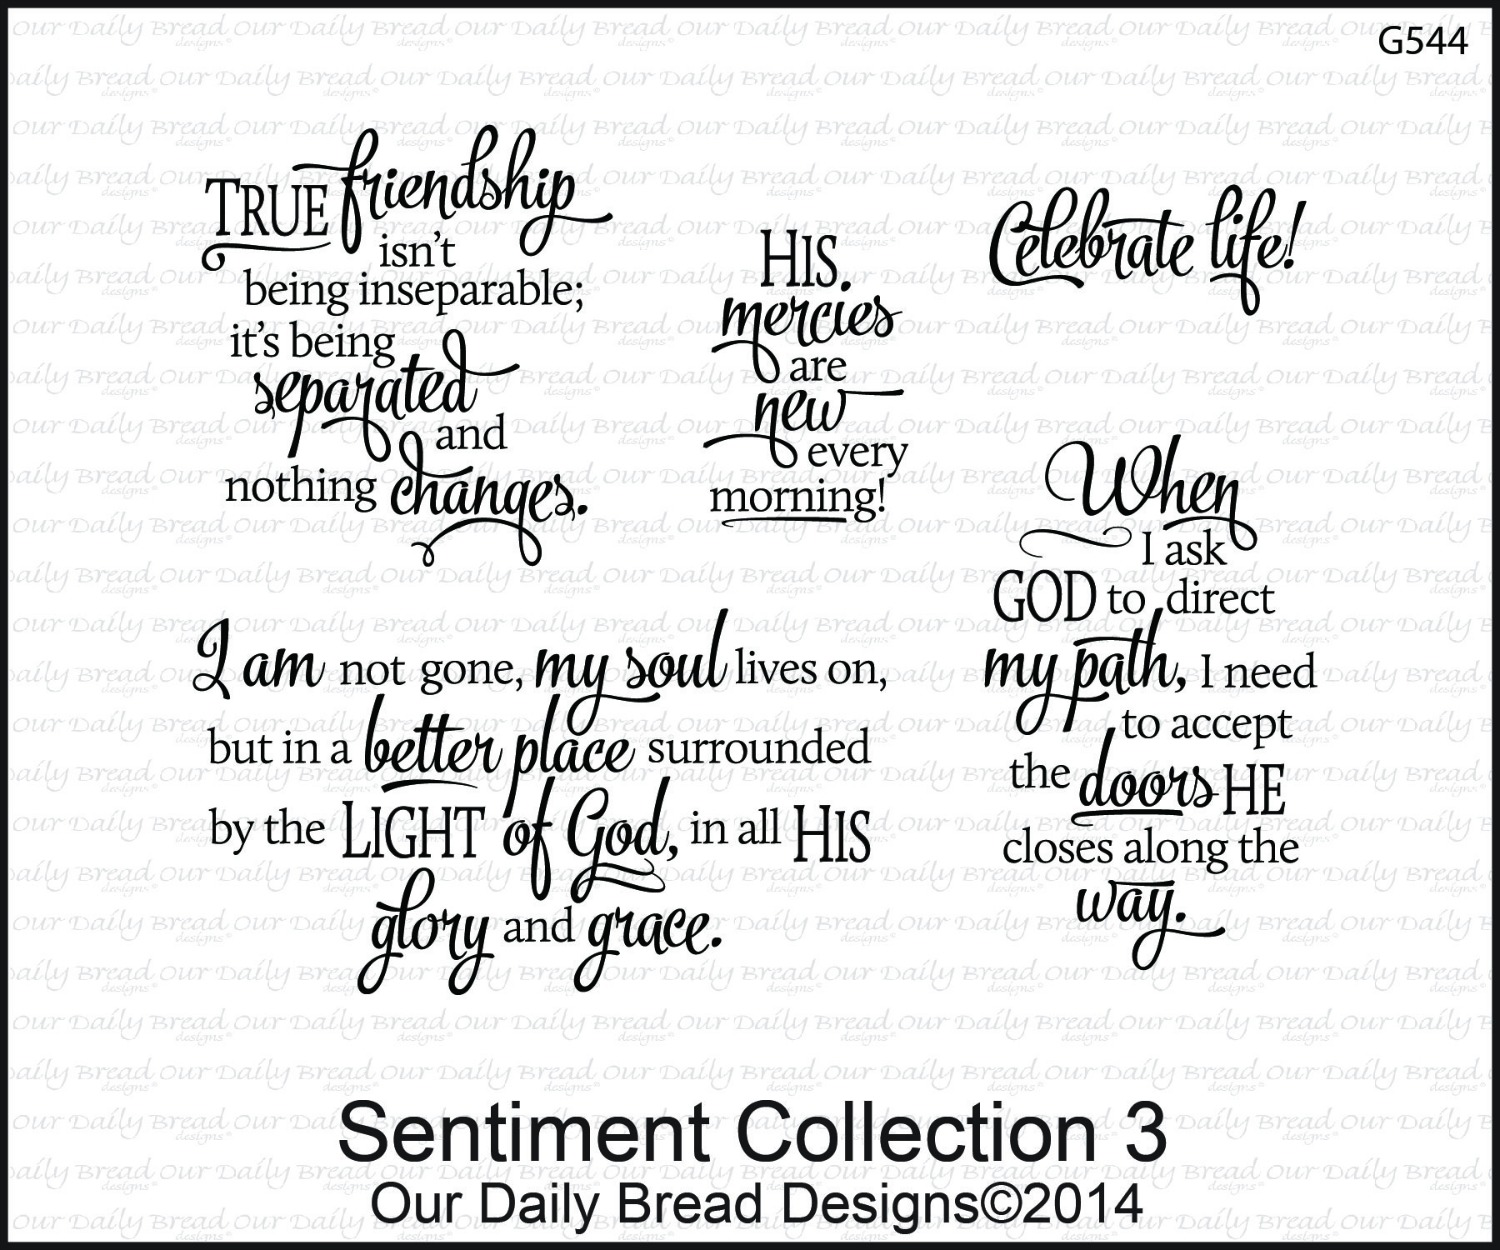 Stamps - Our Daily Bread Designs Sentiment Collection 3